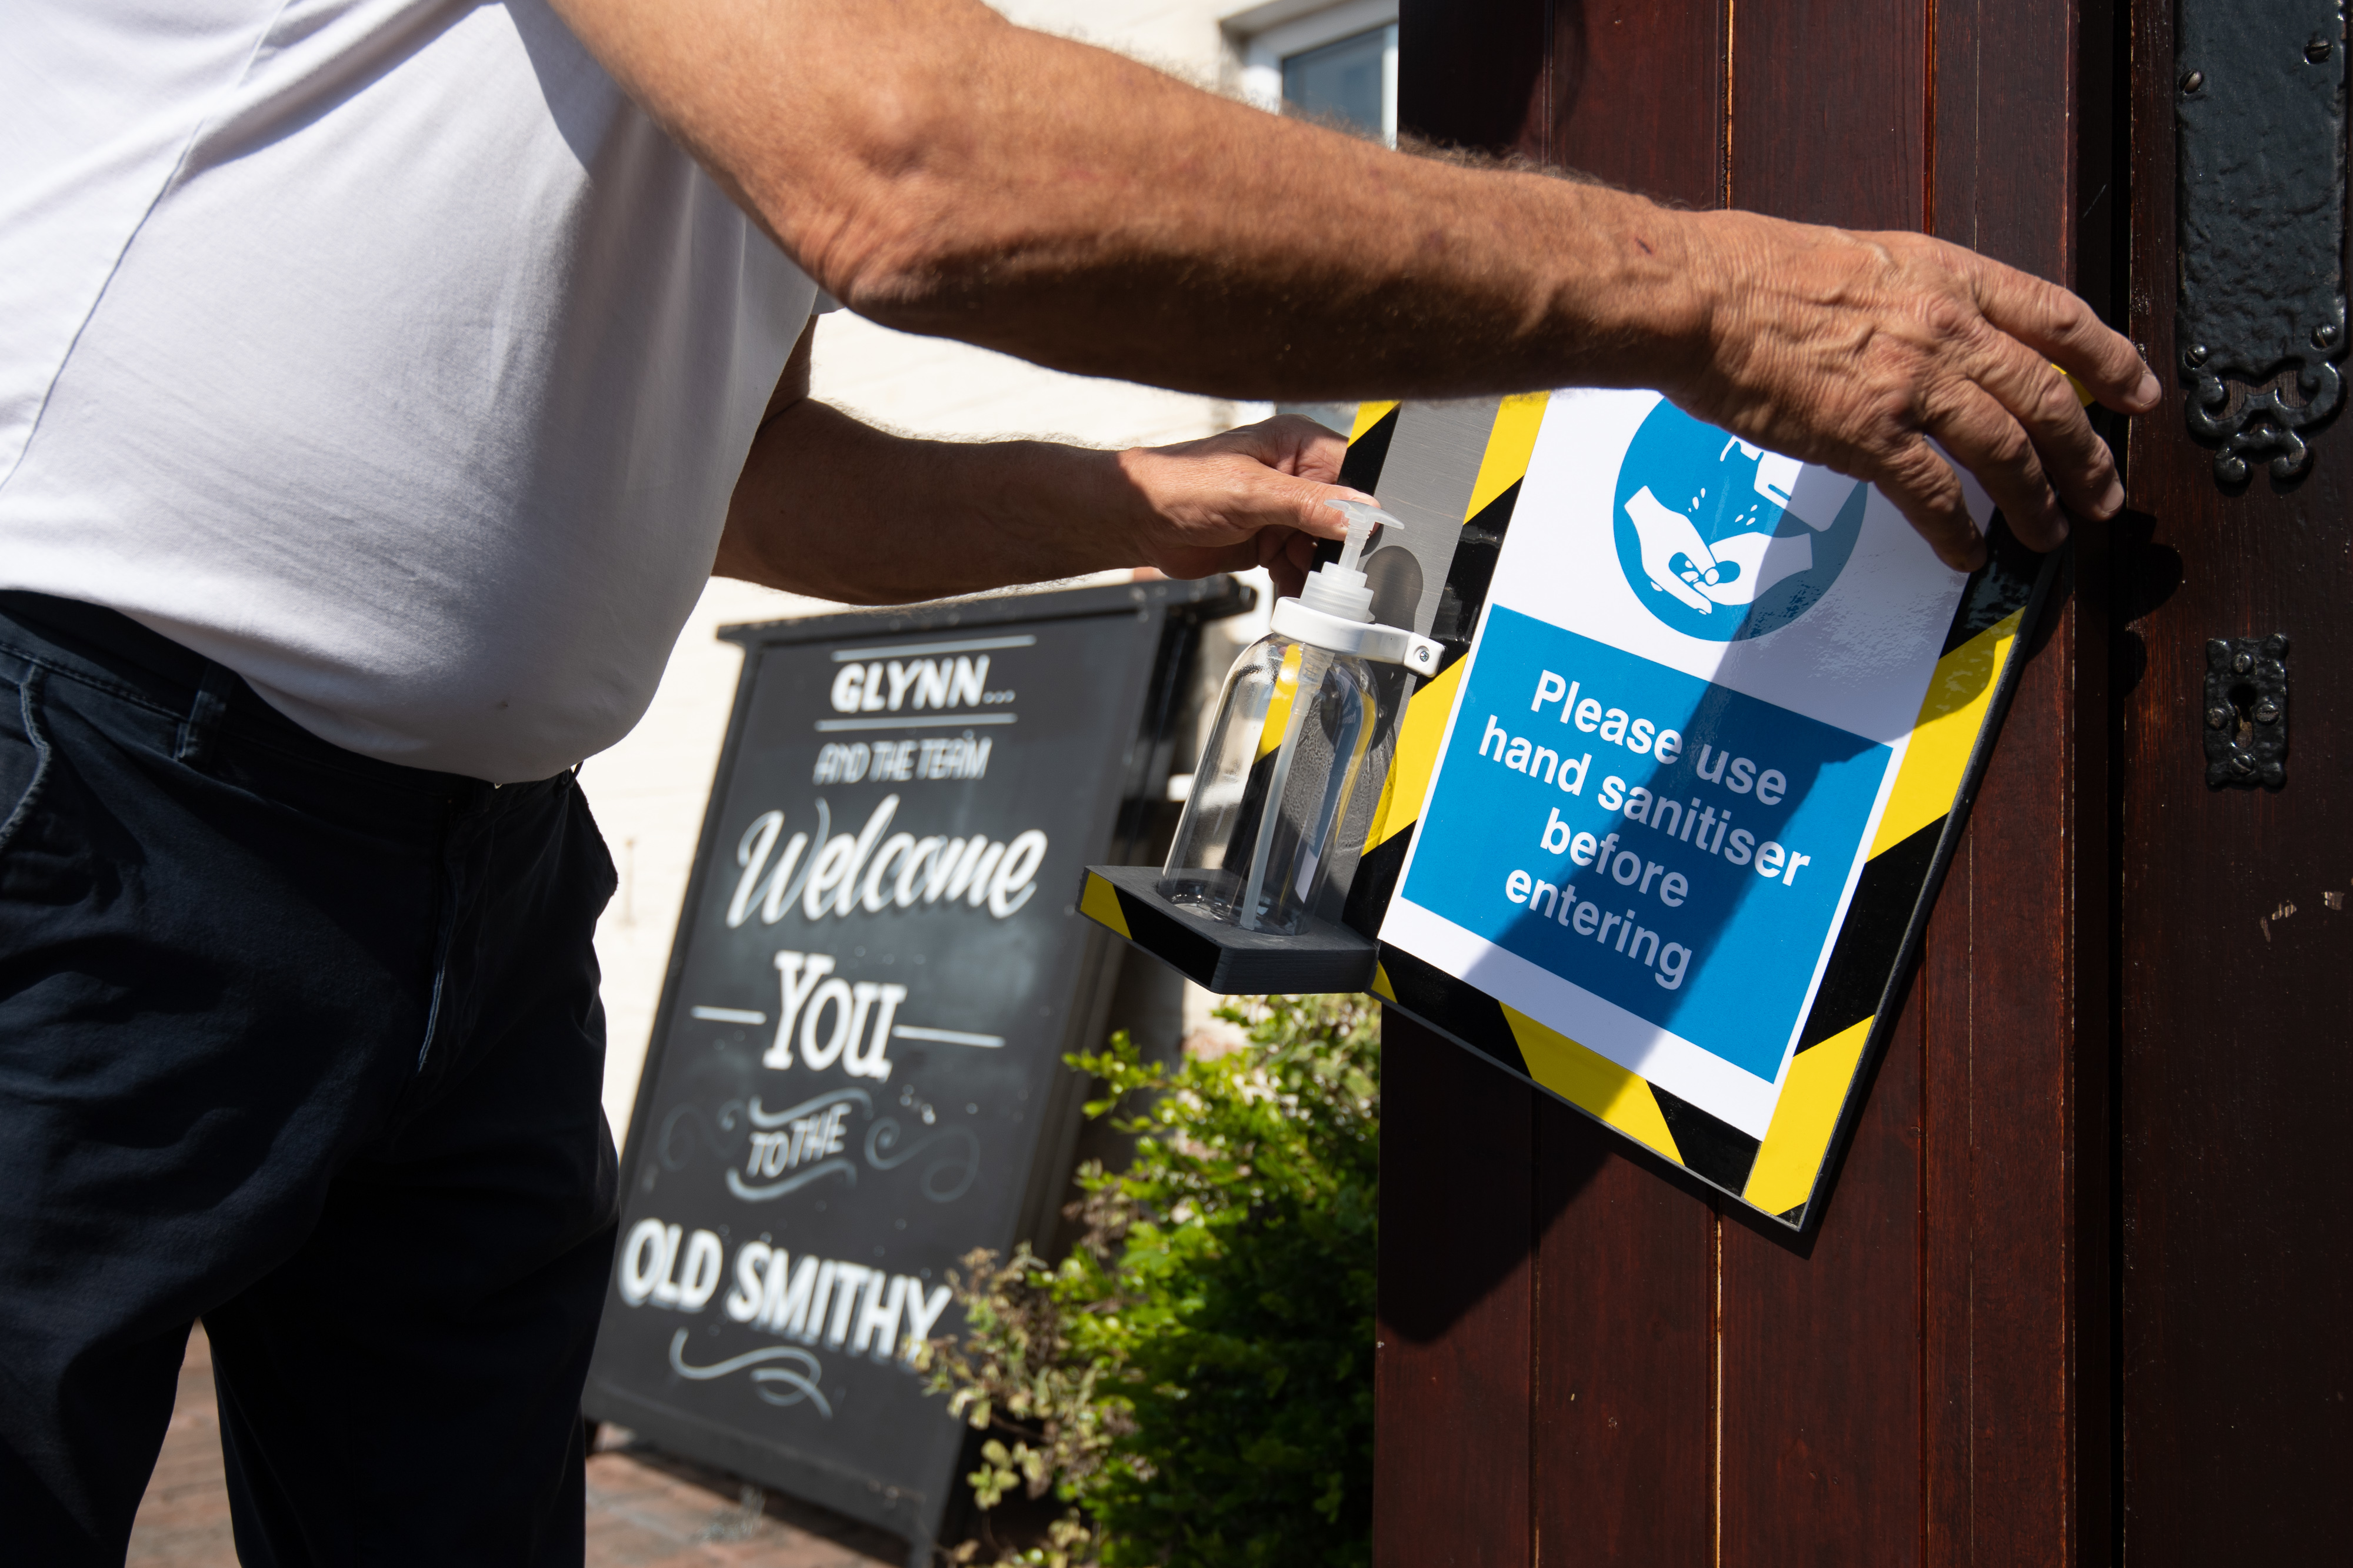 """Phil Weaver, owner of The Old Smith in Church Lawford, Warwickshire installs hand sanitising stations, as pub and hospitality bosses have cheered the Government's proposals to allow customers through their doors again on July 4 as """"a welcome relief""""."""